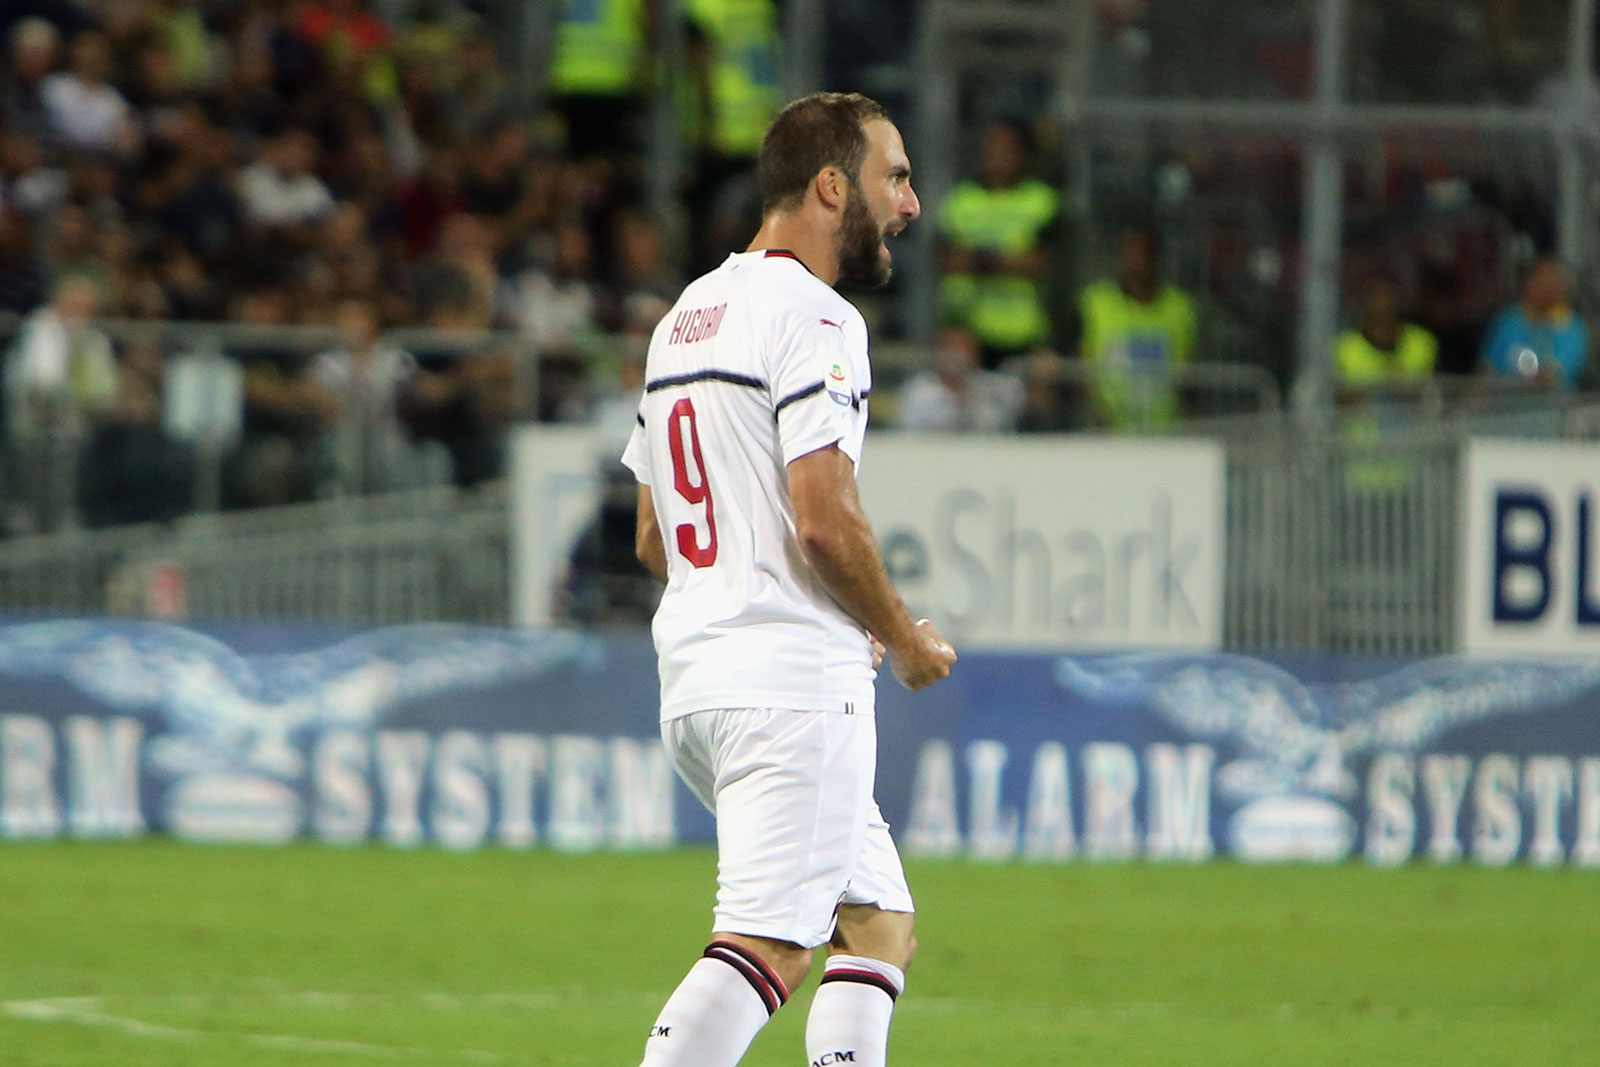 Gonzalo Higuain celebrating during Cagliari-Milan at Sardegna Arena on September 16, 2018. (Photo by Enrico Locci/Getty Images)